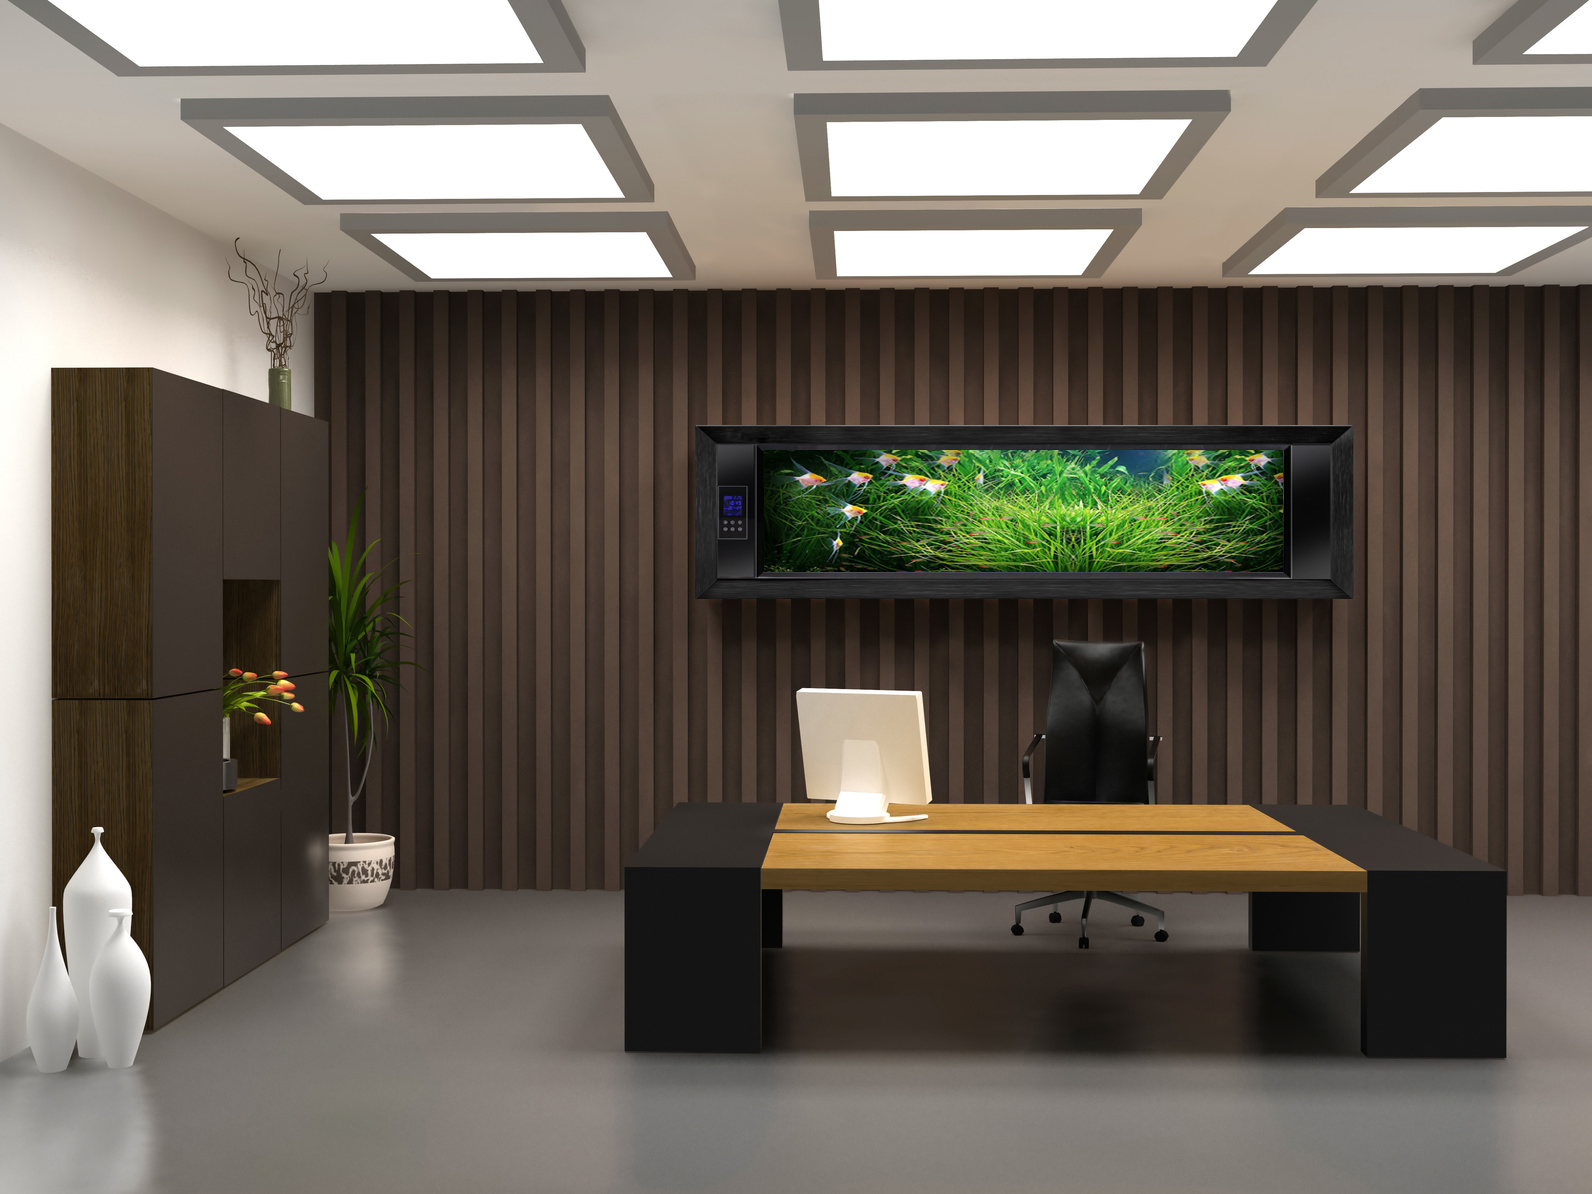 Elegant ceo office design bellisima for Office interior design ideas